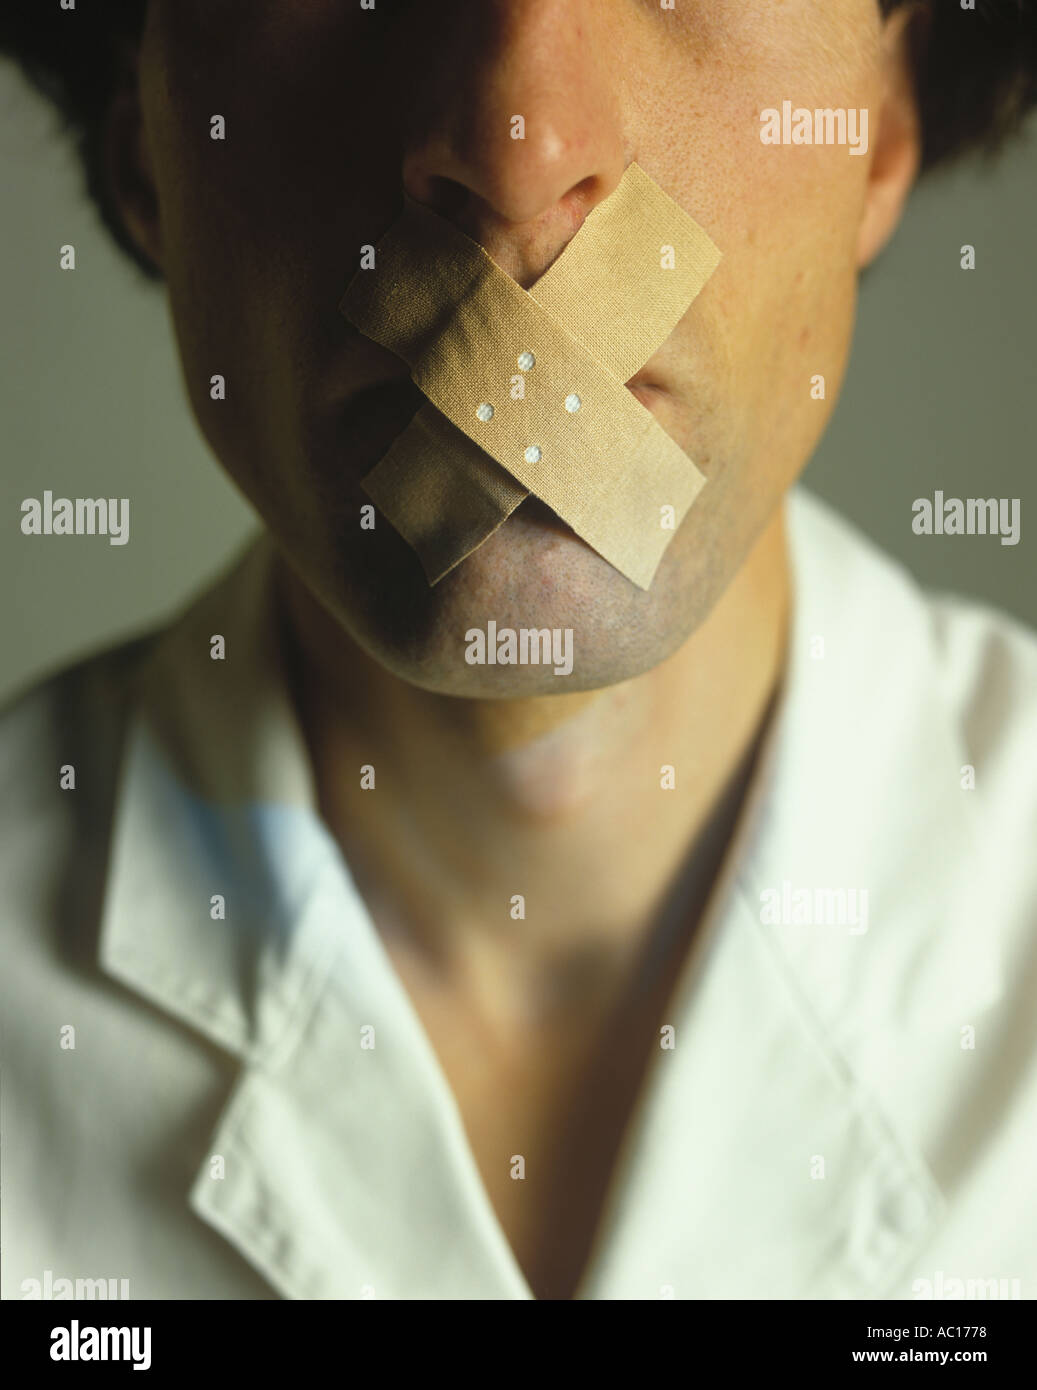 Mouth of a man taped with plaster Stock Photo